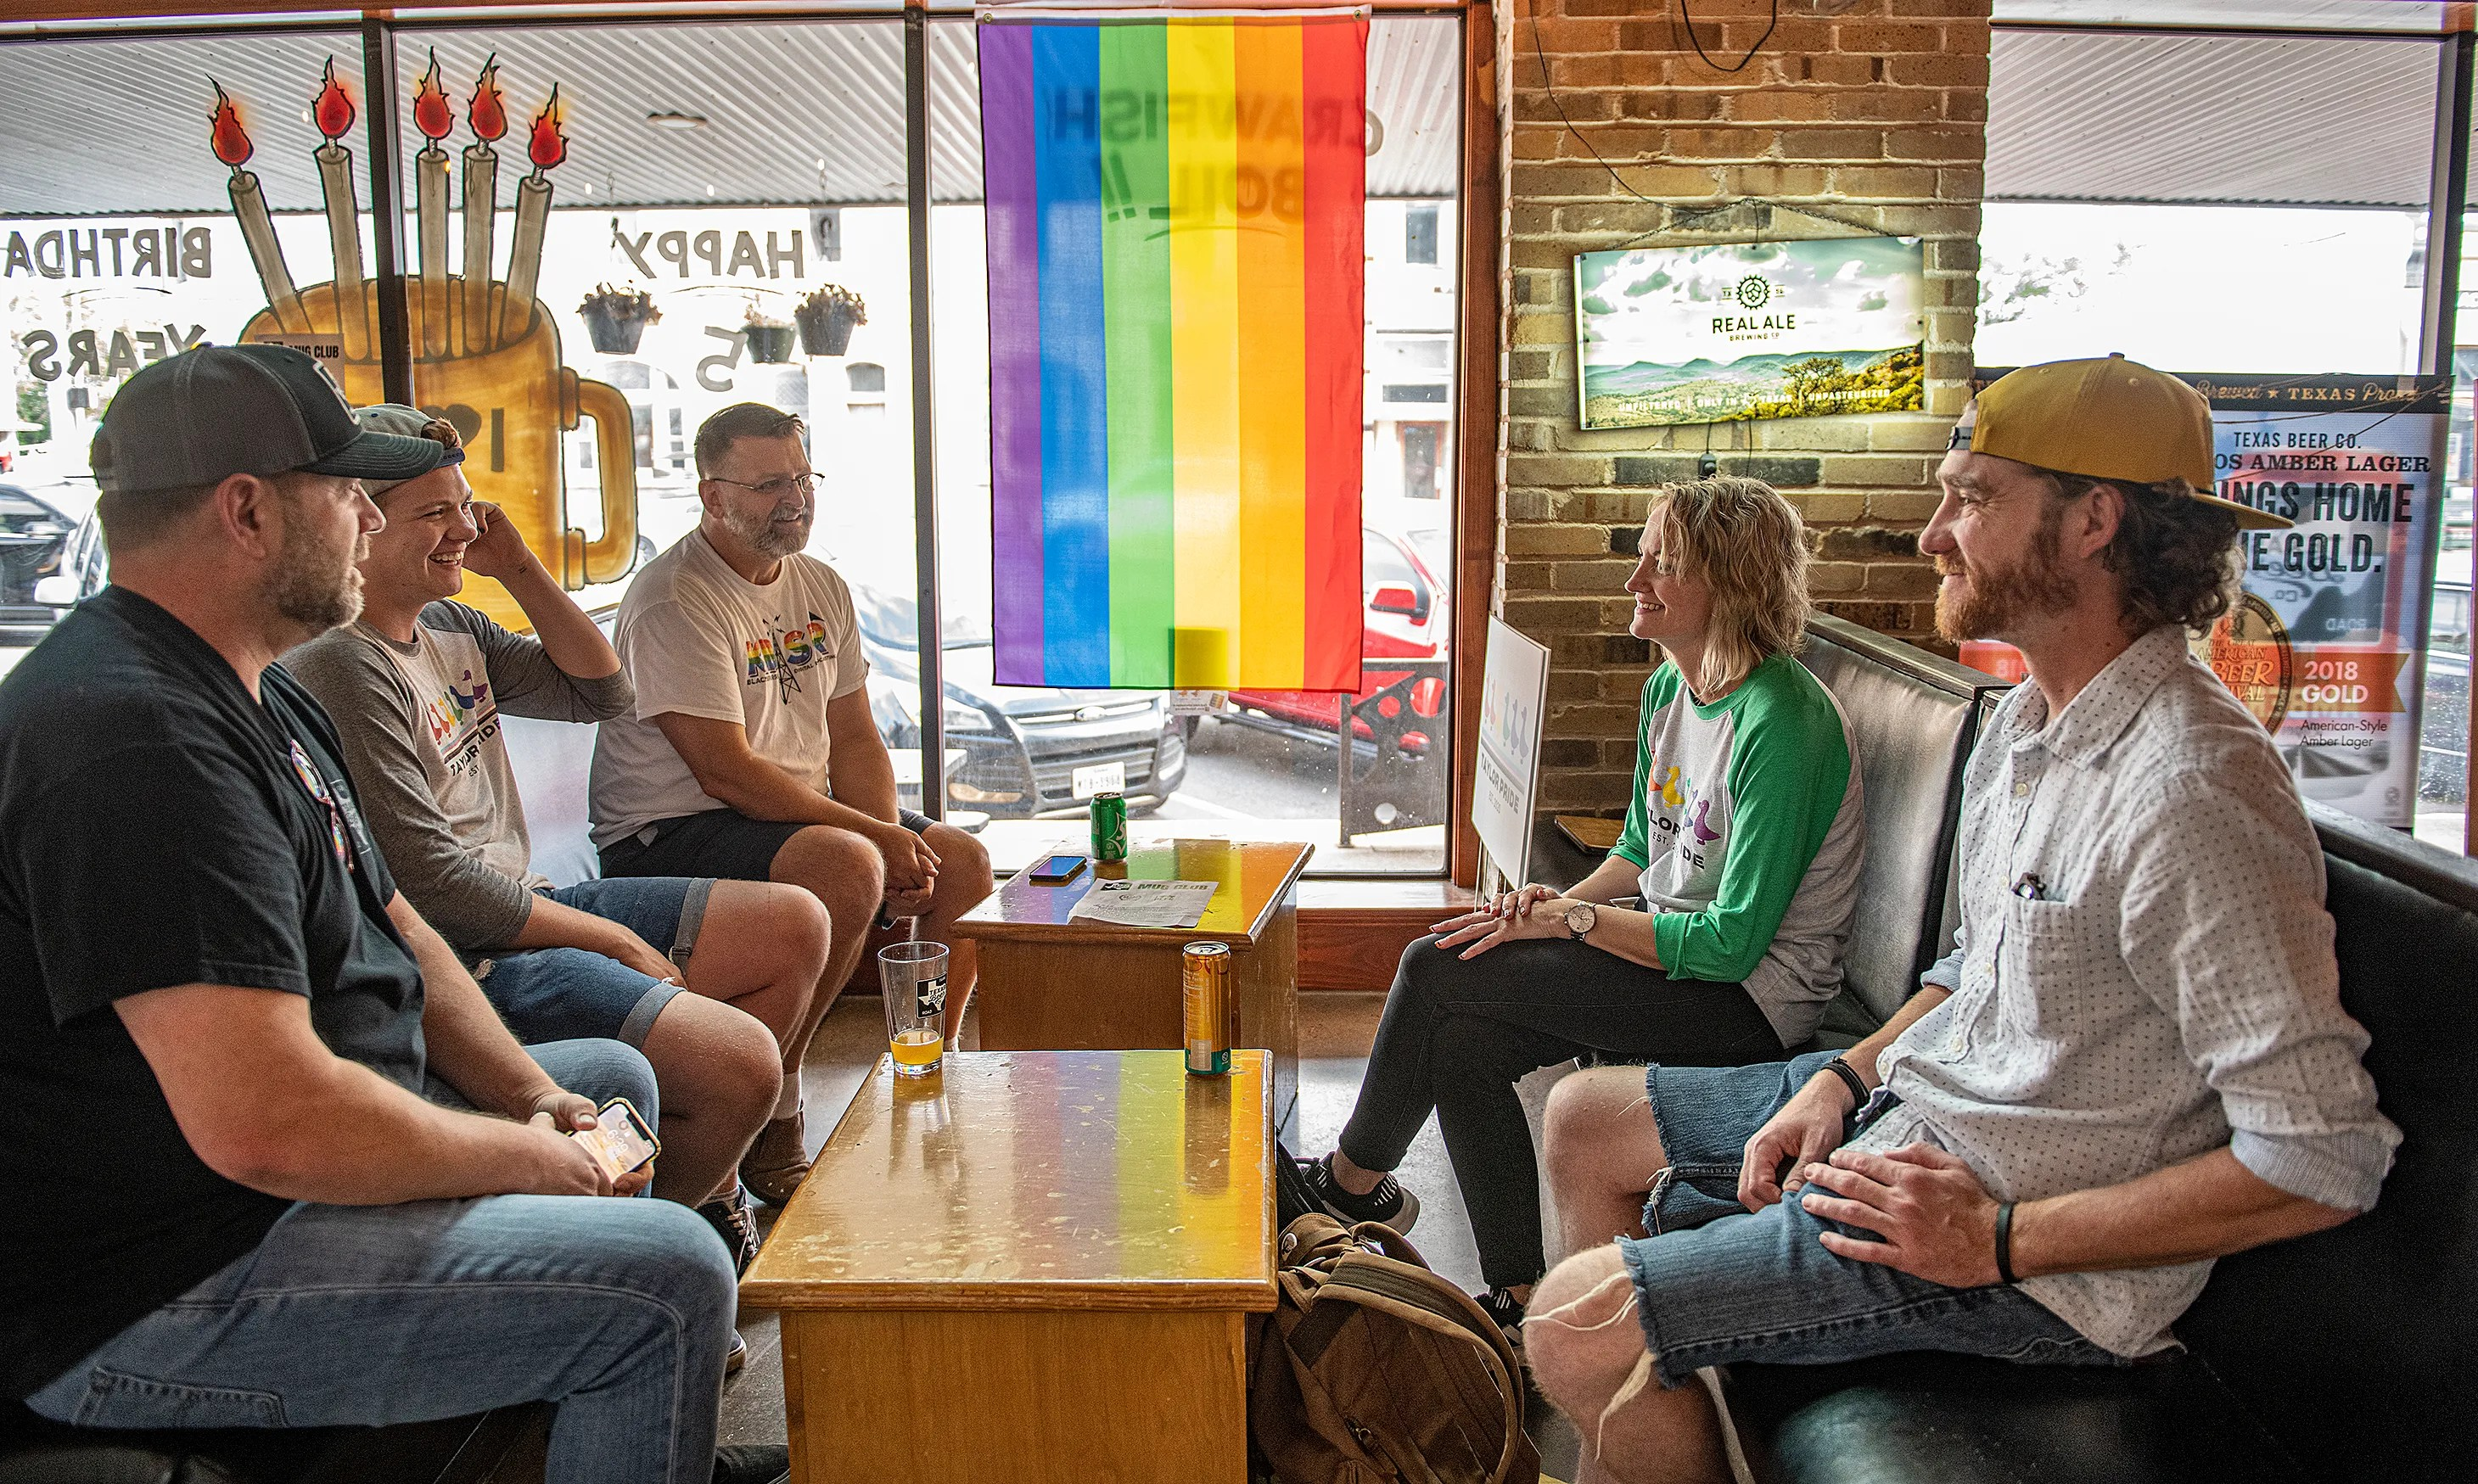 Denise Rodgers, back right, meets Thursday with some of the Taylor Pride Festival's organizing committee, including Ryan Davenport, front right, and at left from front to back, Cort Geis, Red Bailey and Patrick Taylor.